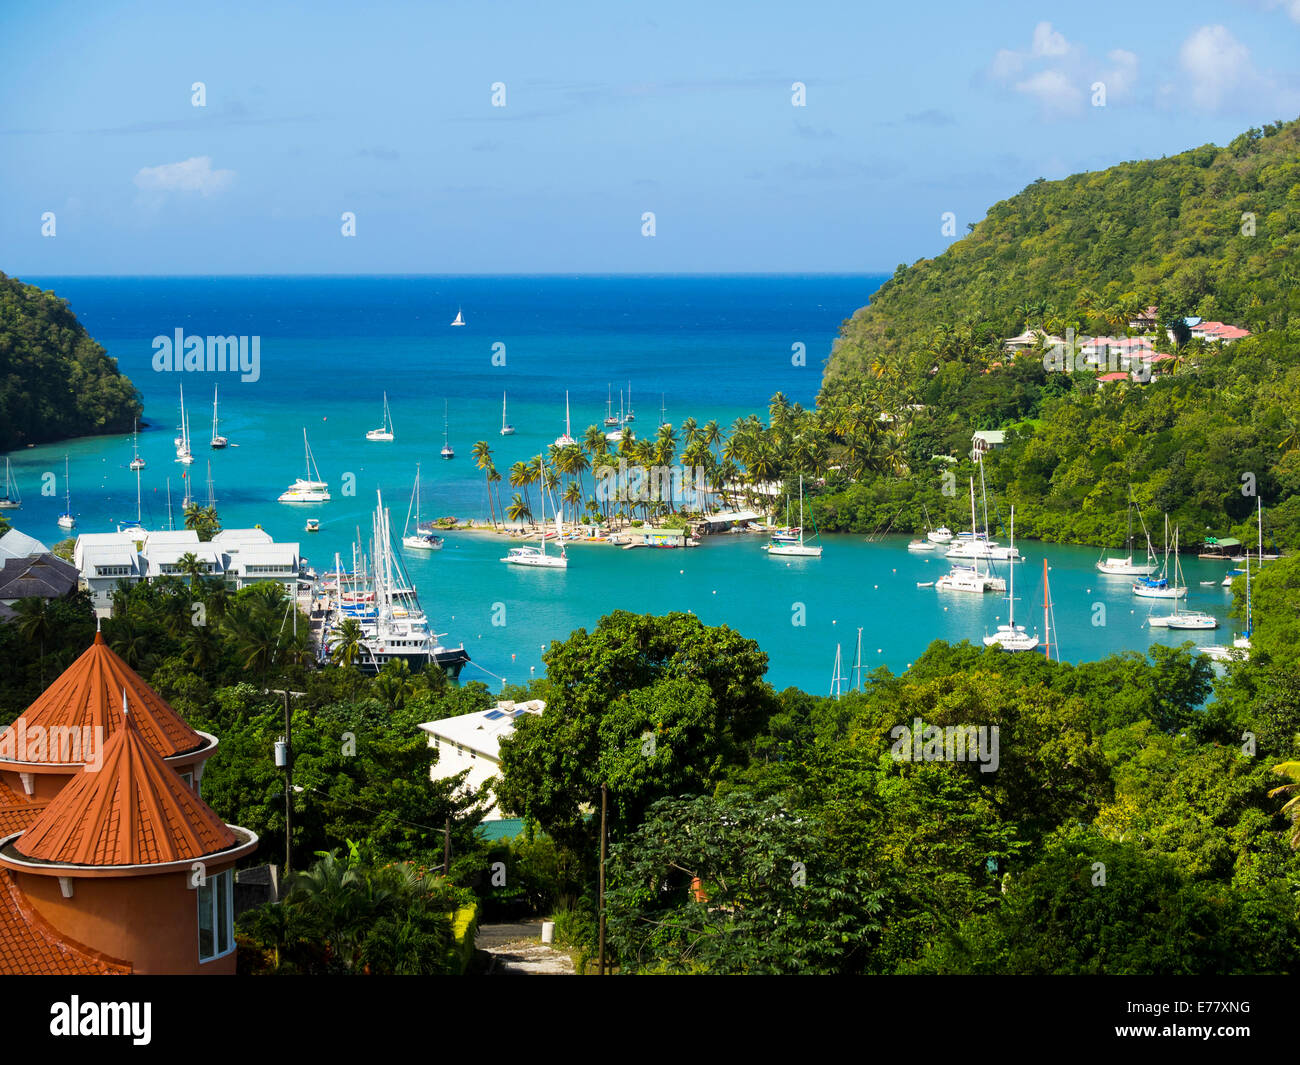 View of Marigot Bay with yachts, Castries, St. Lucia island, Lesser Antilles, Windward Islands, St. Lucia - Stock Image